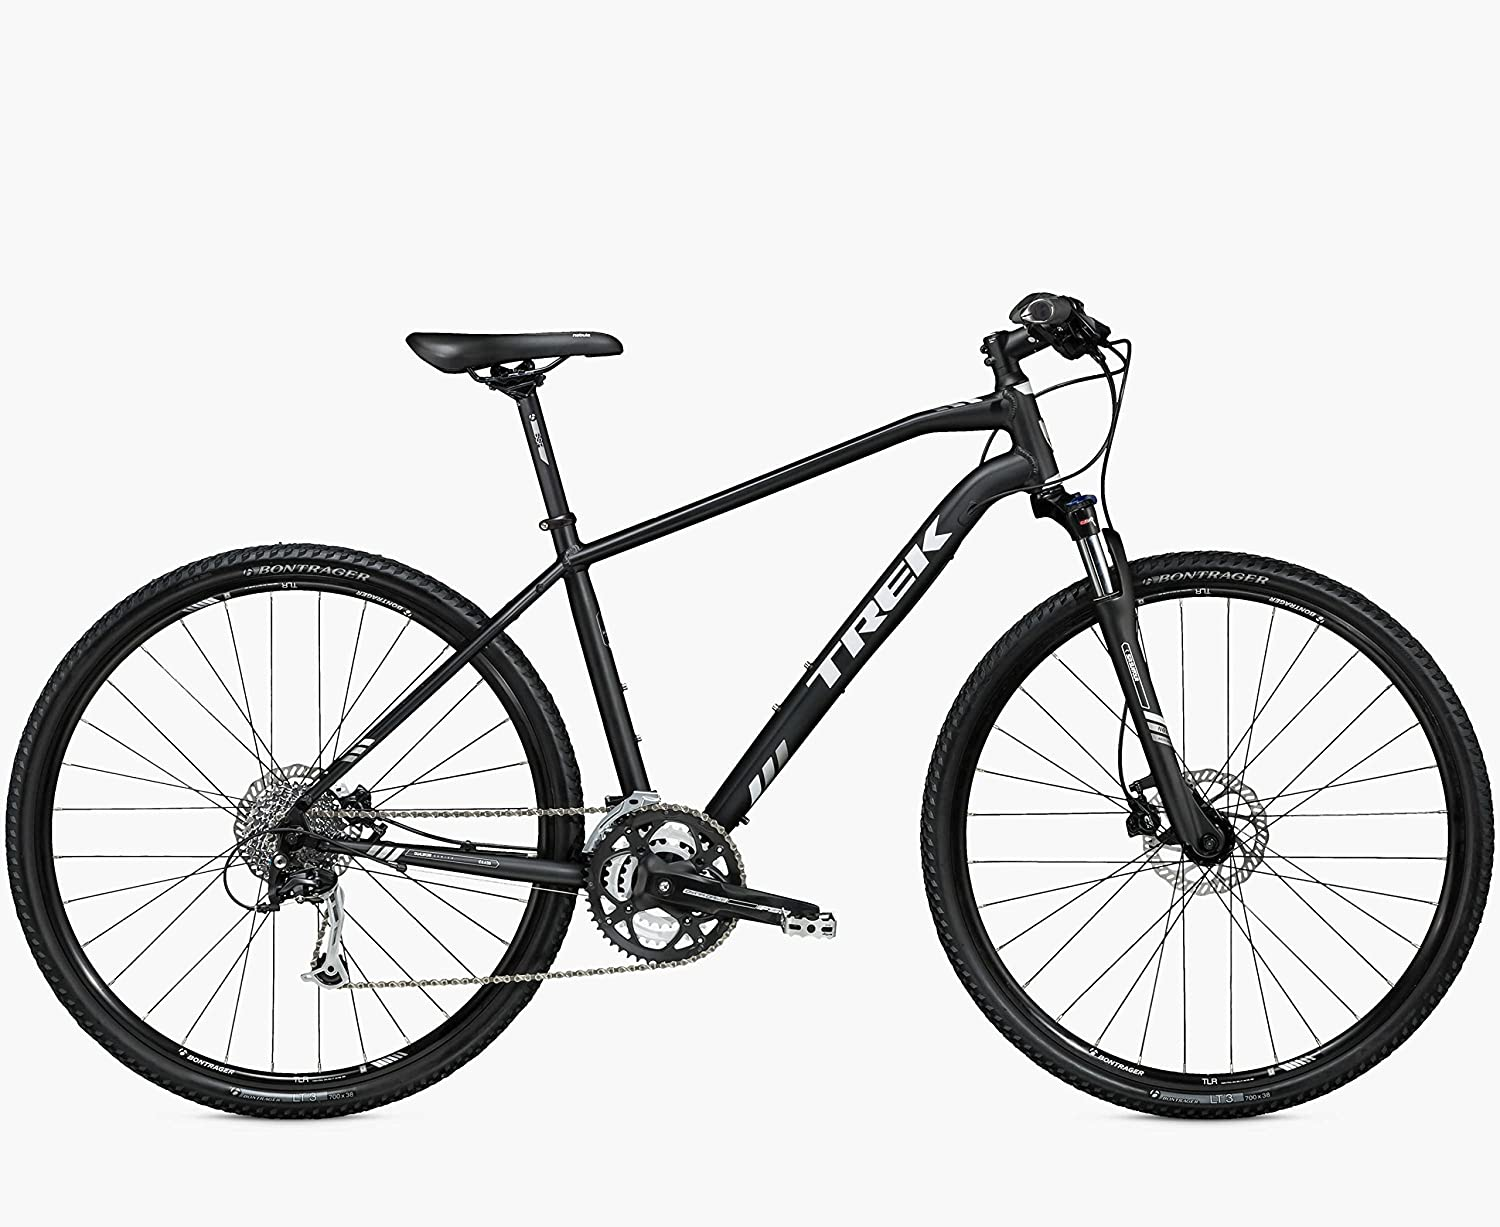 Trek 8.4 DS Dual Sport 22.5 Mountain bike, color negro mate, MTB Cross: Amazon.es: Deportes y aire libre